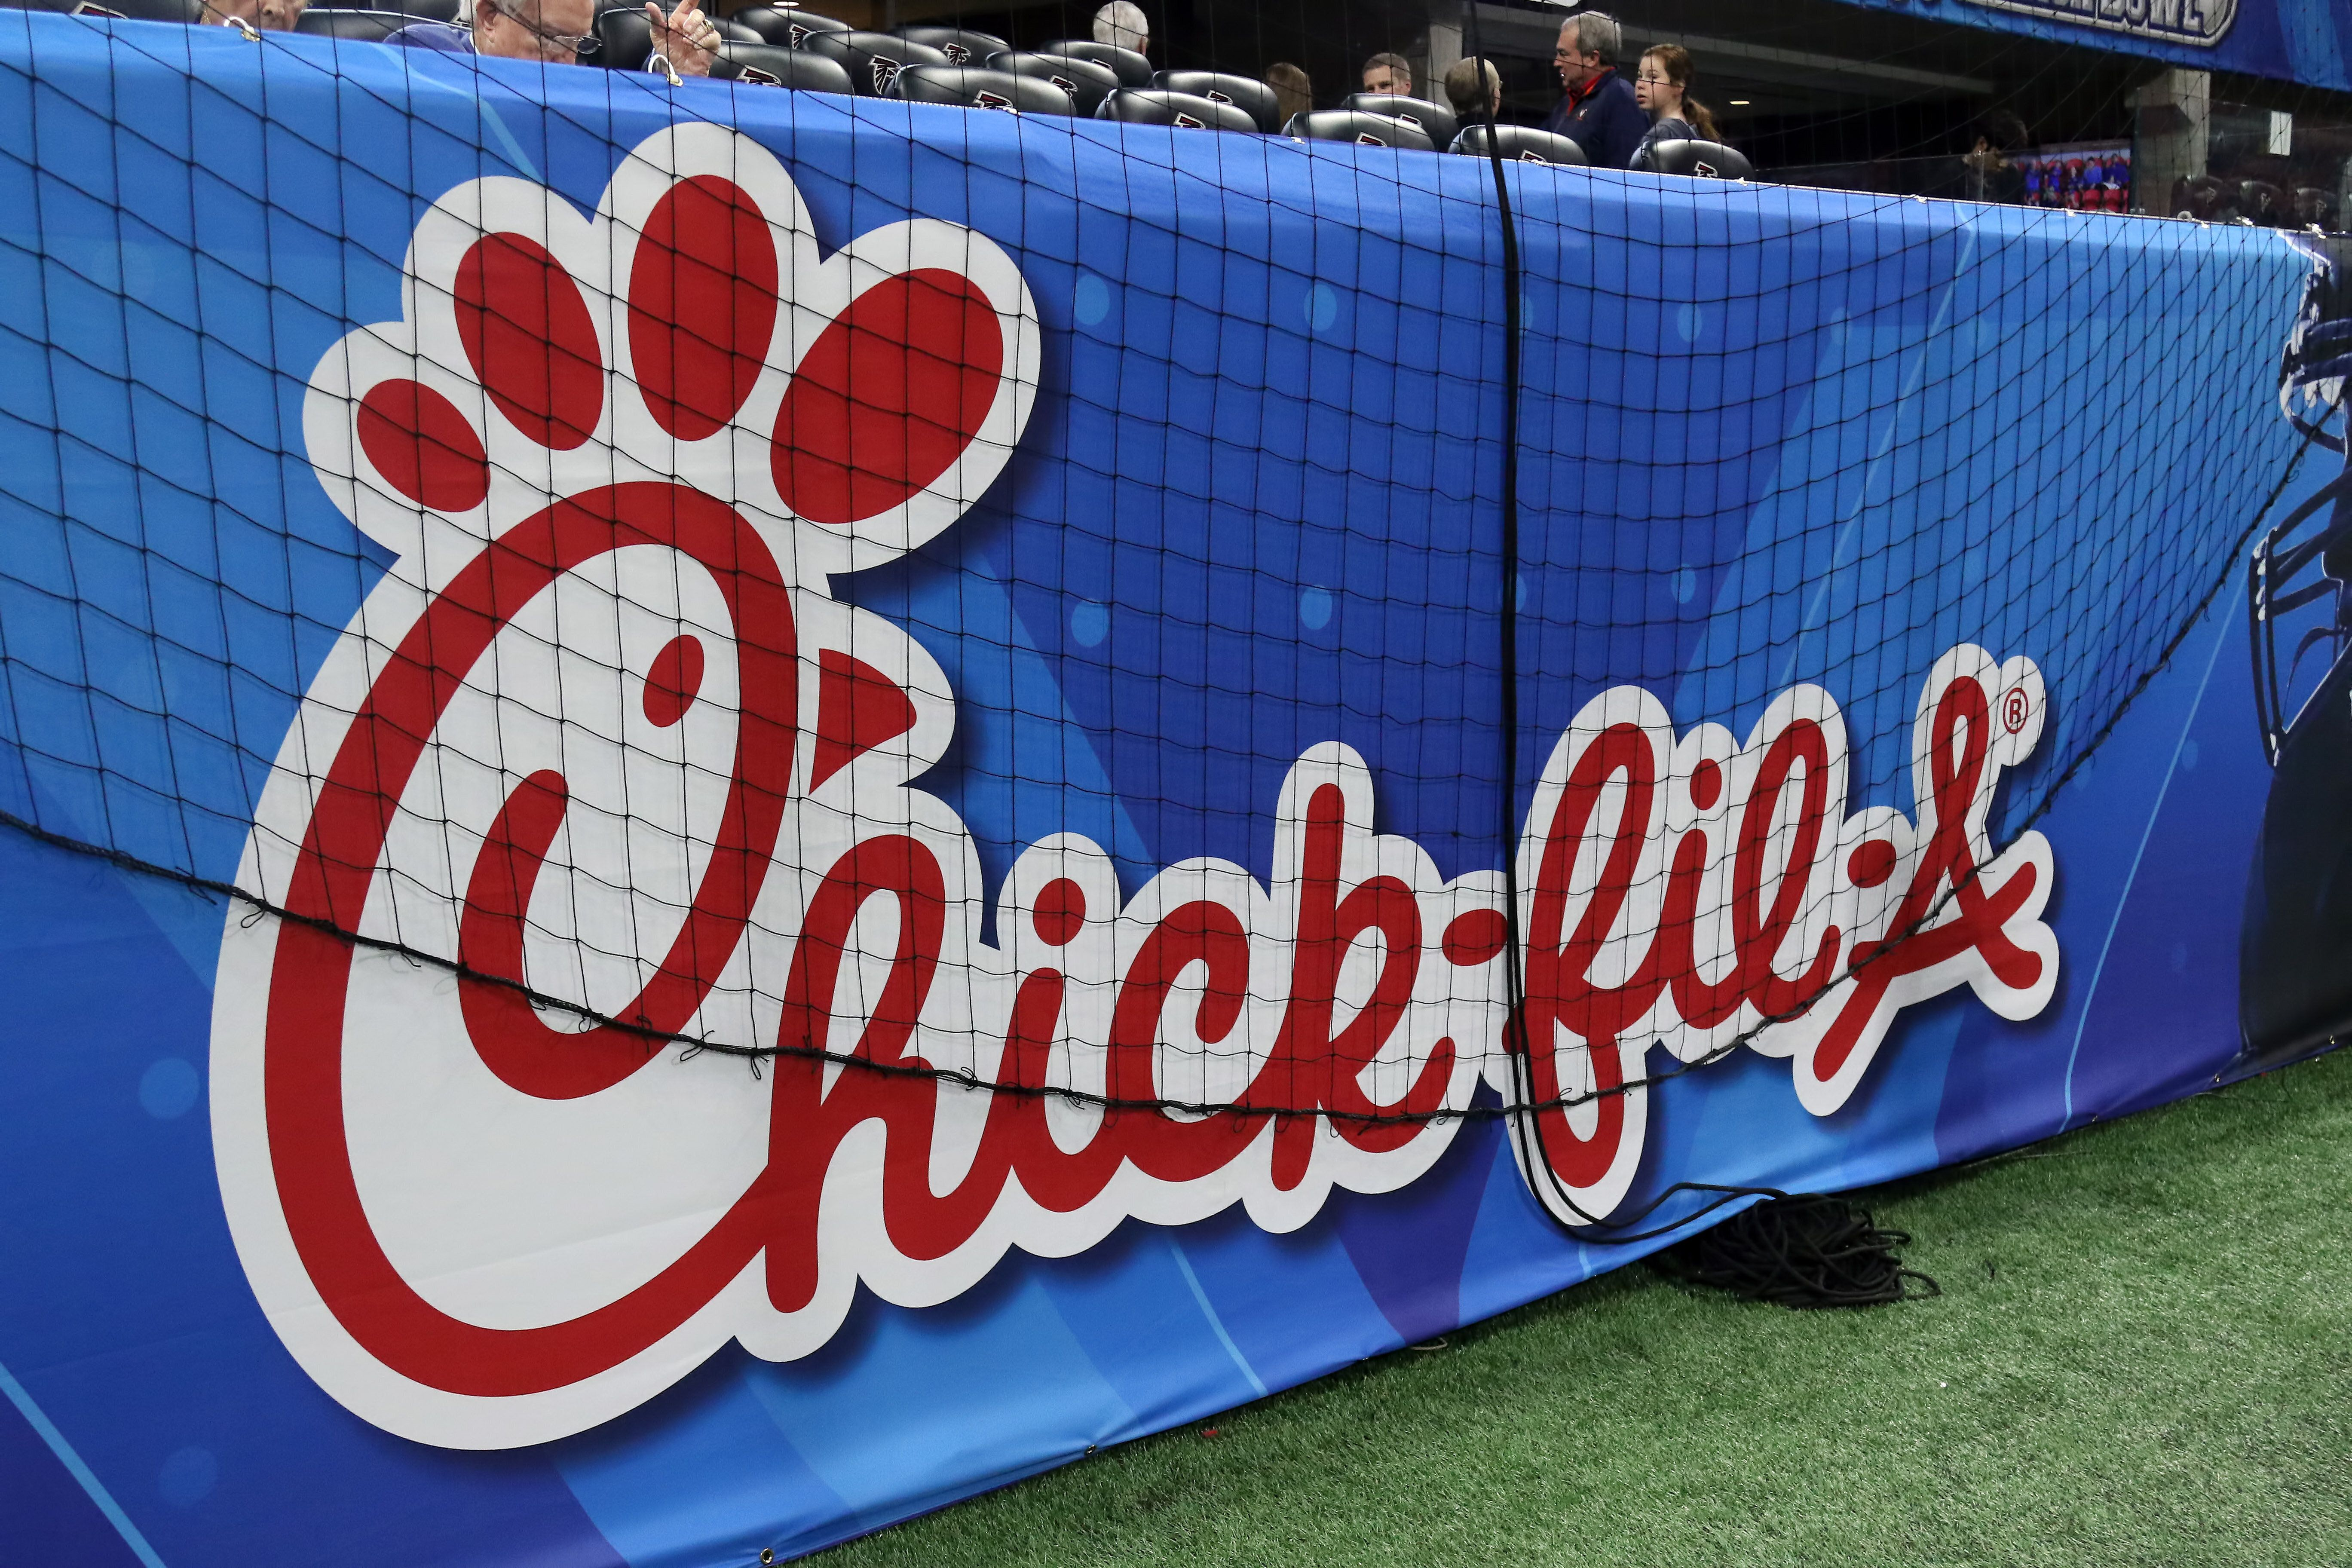 ATLANTA, GA - DECEMBER 29:   The Chick-fil-A logo is on display during the Peach Bowl between the Florida Gators and the Michigan Wolverines on December 29, 2018 at Mercedes-Benz Stadium in Atlanta, Georgia. (Photo by Michael Wade/Icon Sportswire via Getty Images)